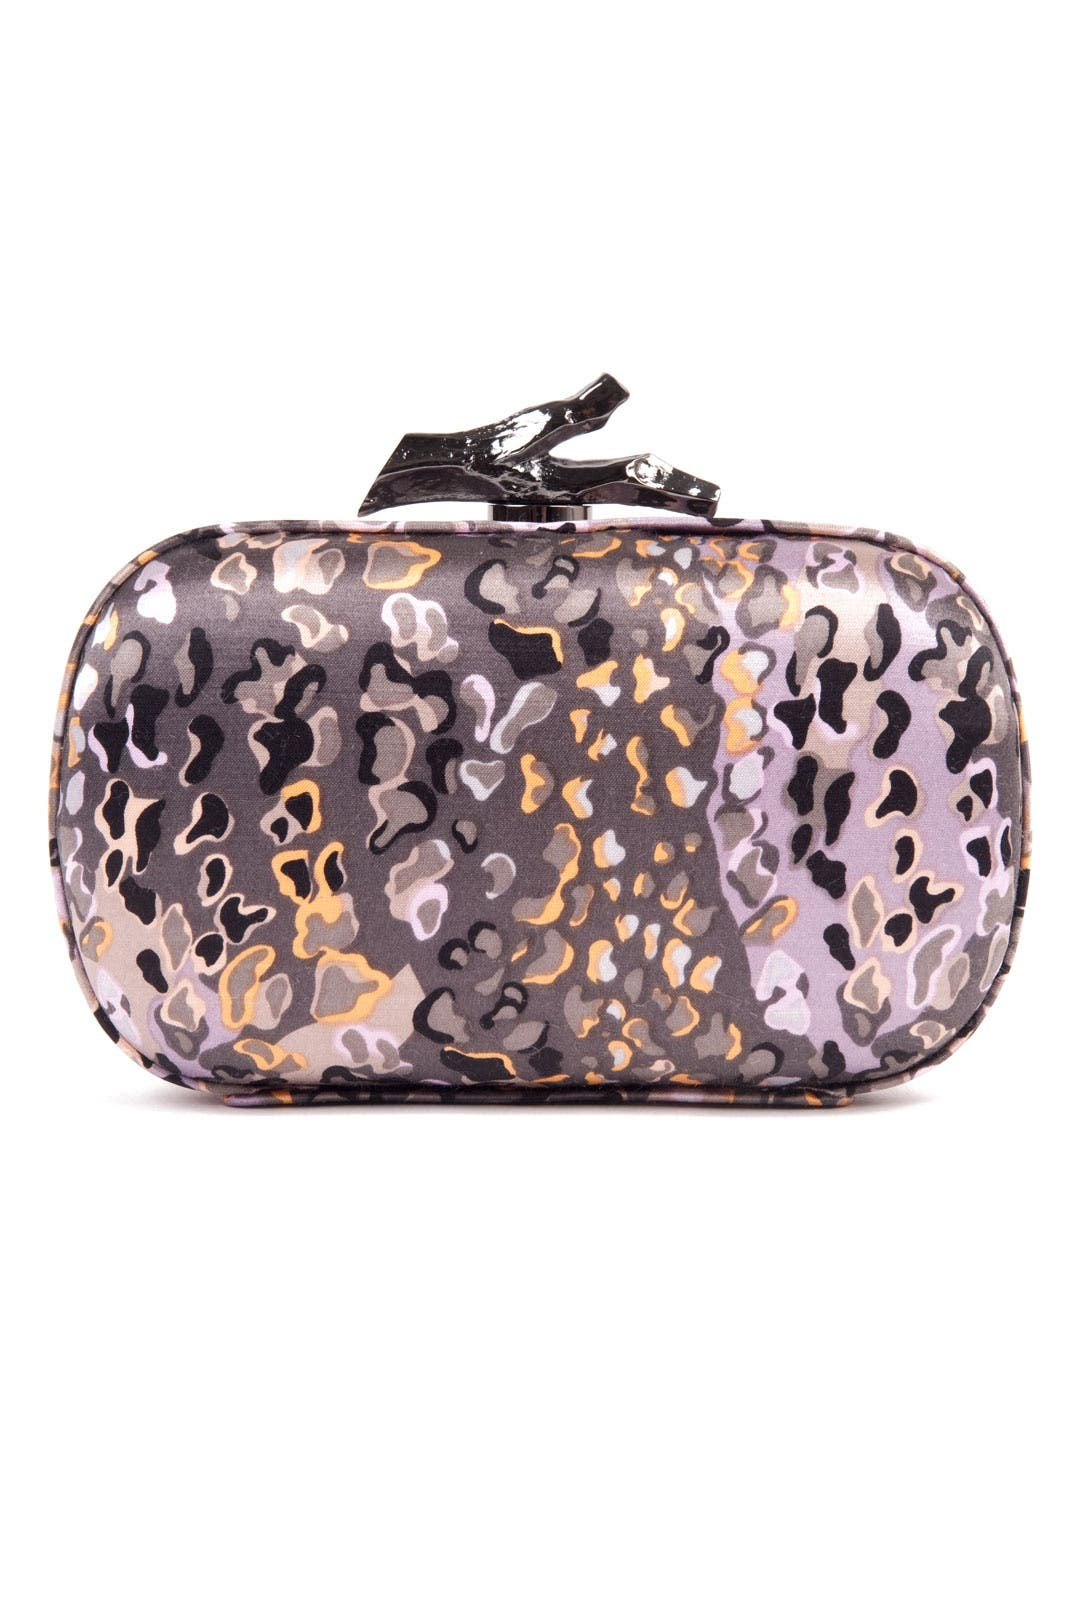 Royal Leopard Clutch by Diane von Furstenberg Handbags